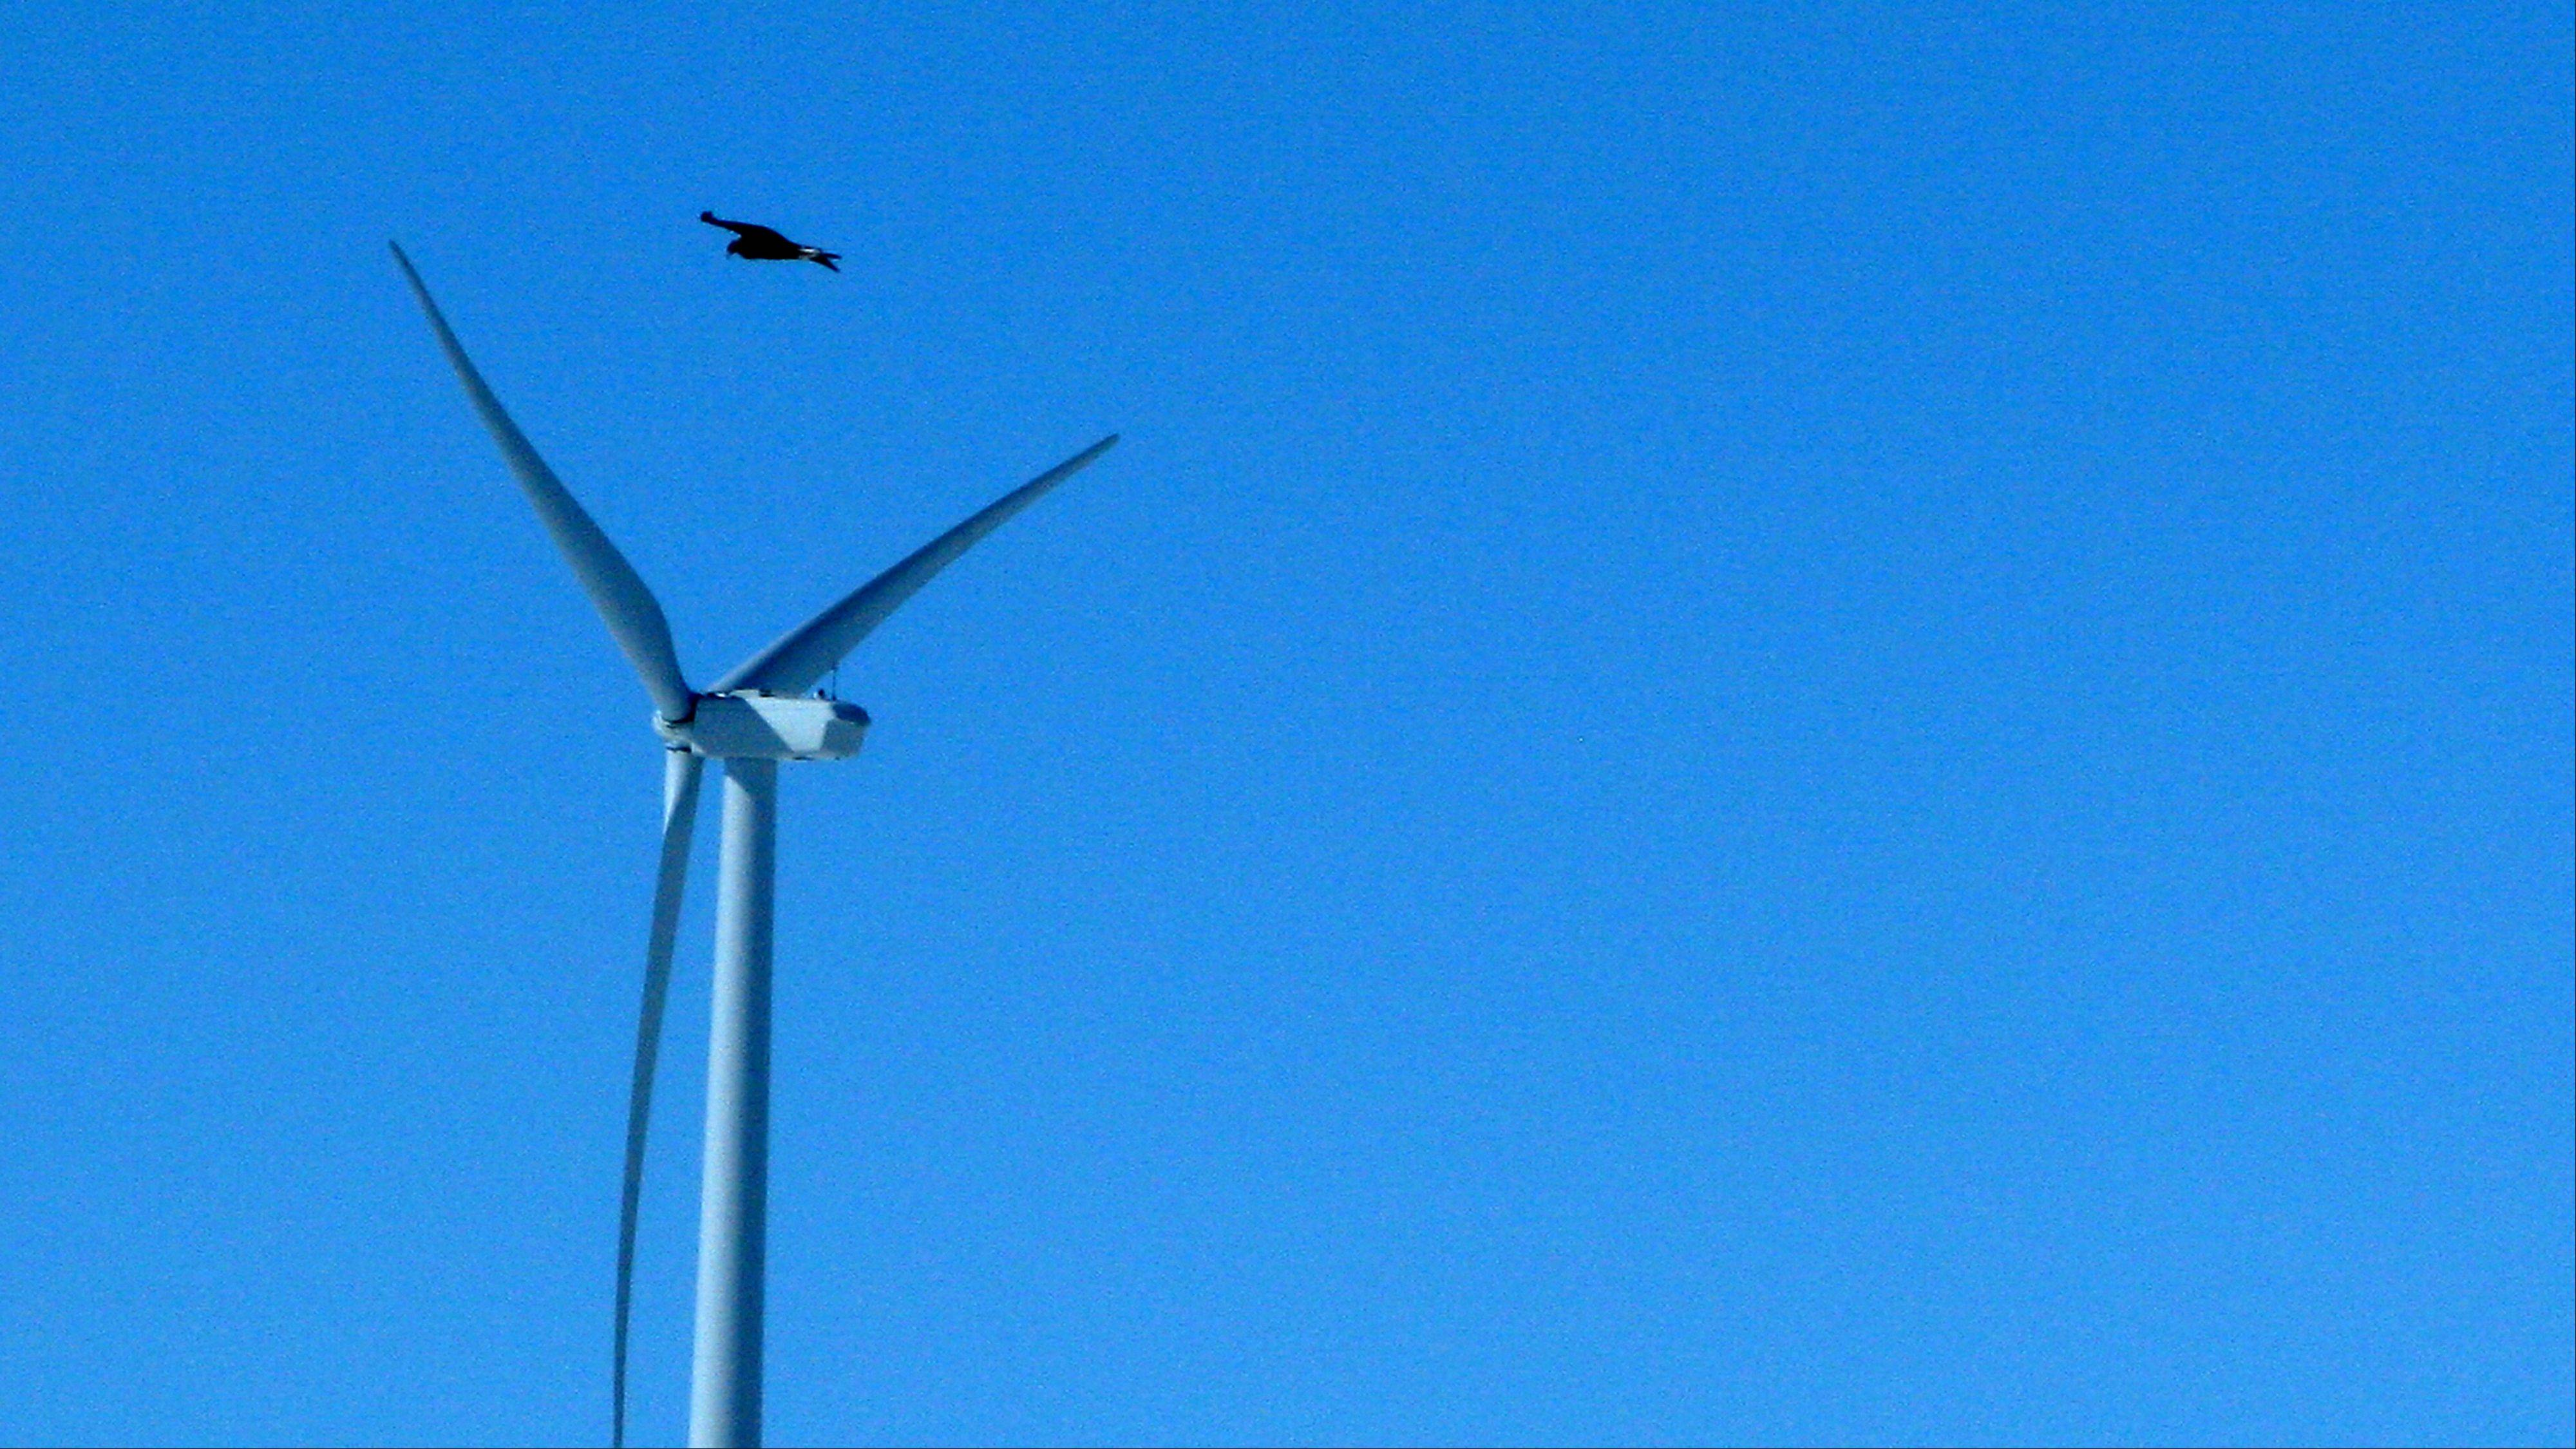 A golden eagle flies over a wind turbine on Duke energy's top of the world wind farm in Converse County Wyo.